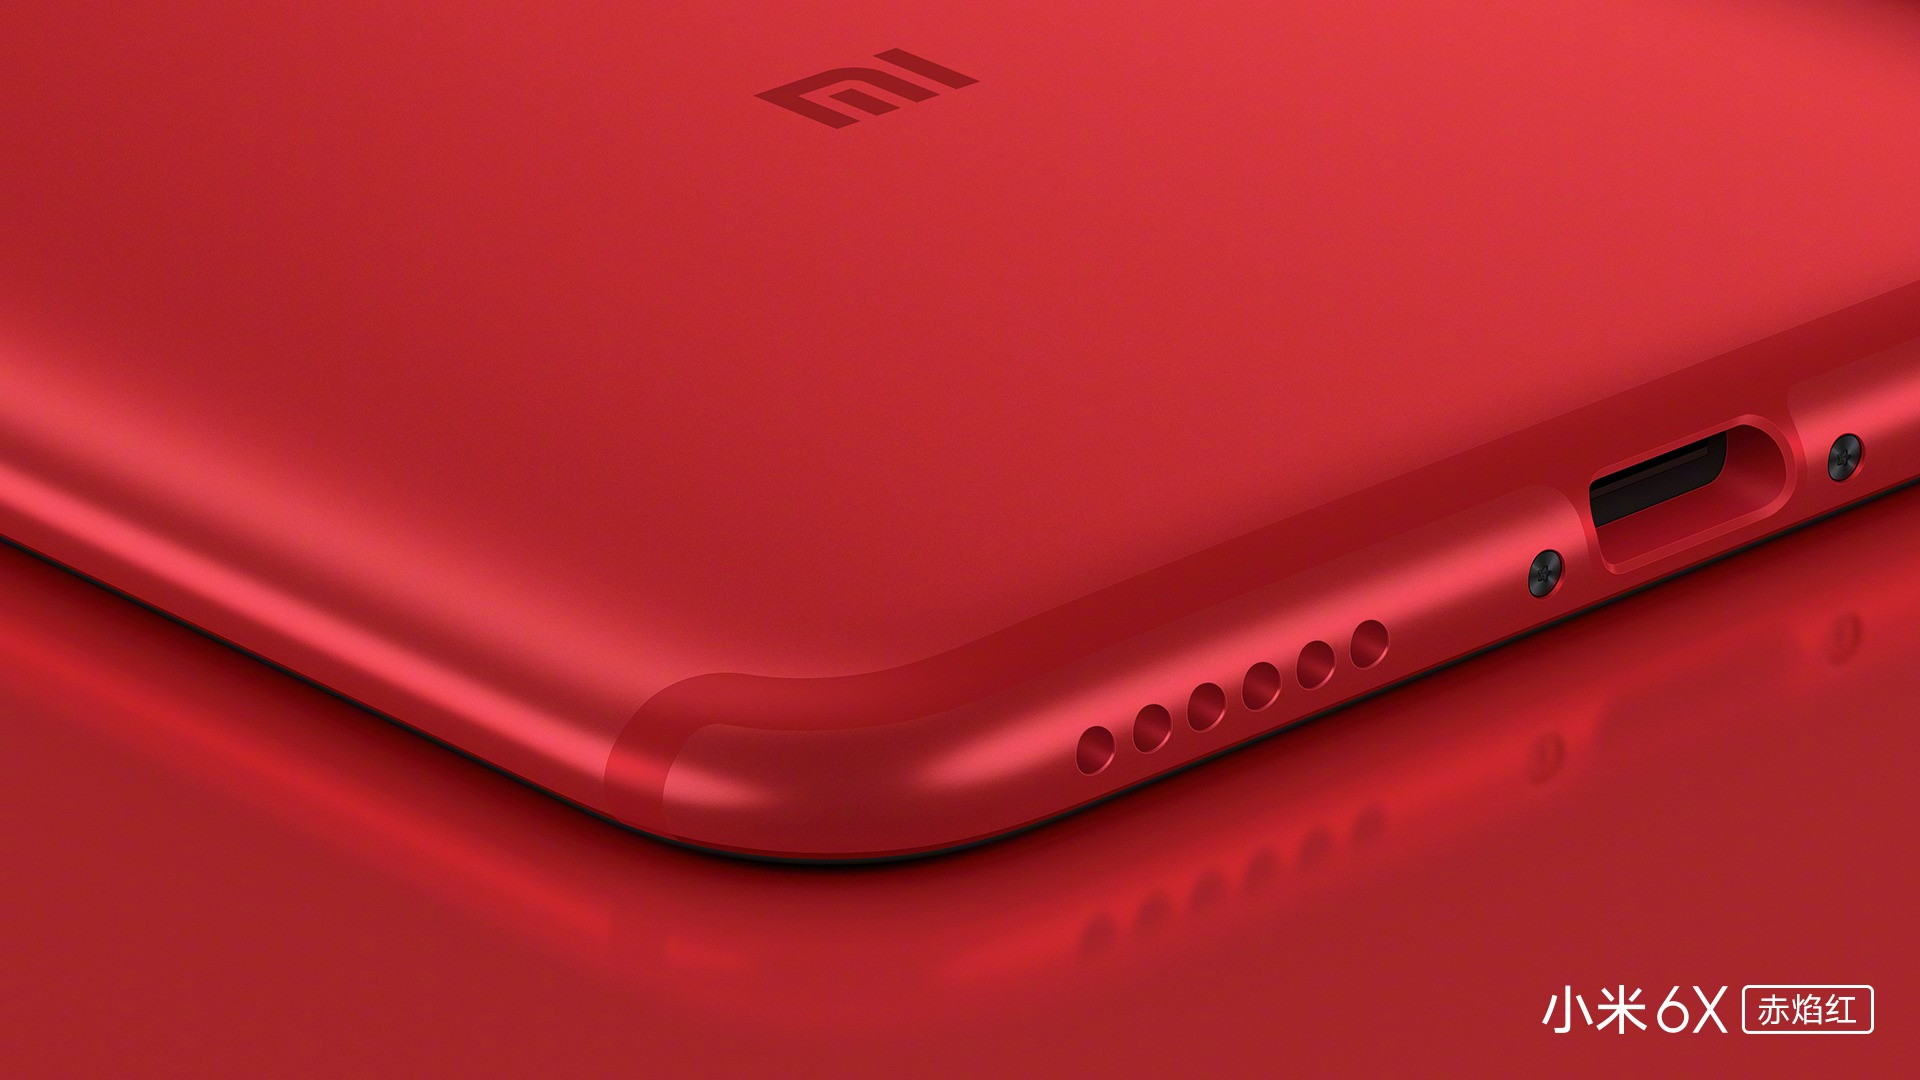 Xiaomi Mi 6X is now official with Snapdragon 660 & 3,010mAh battery 2